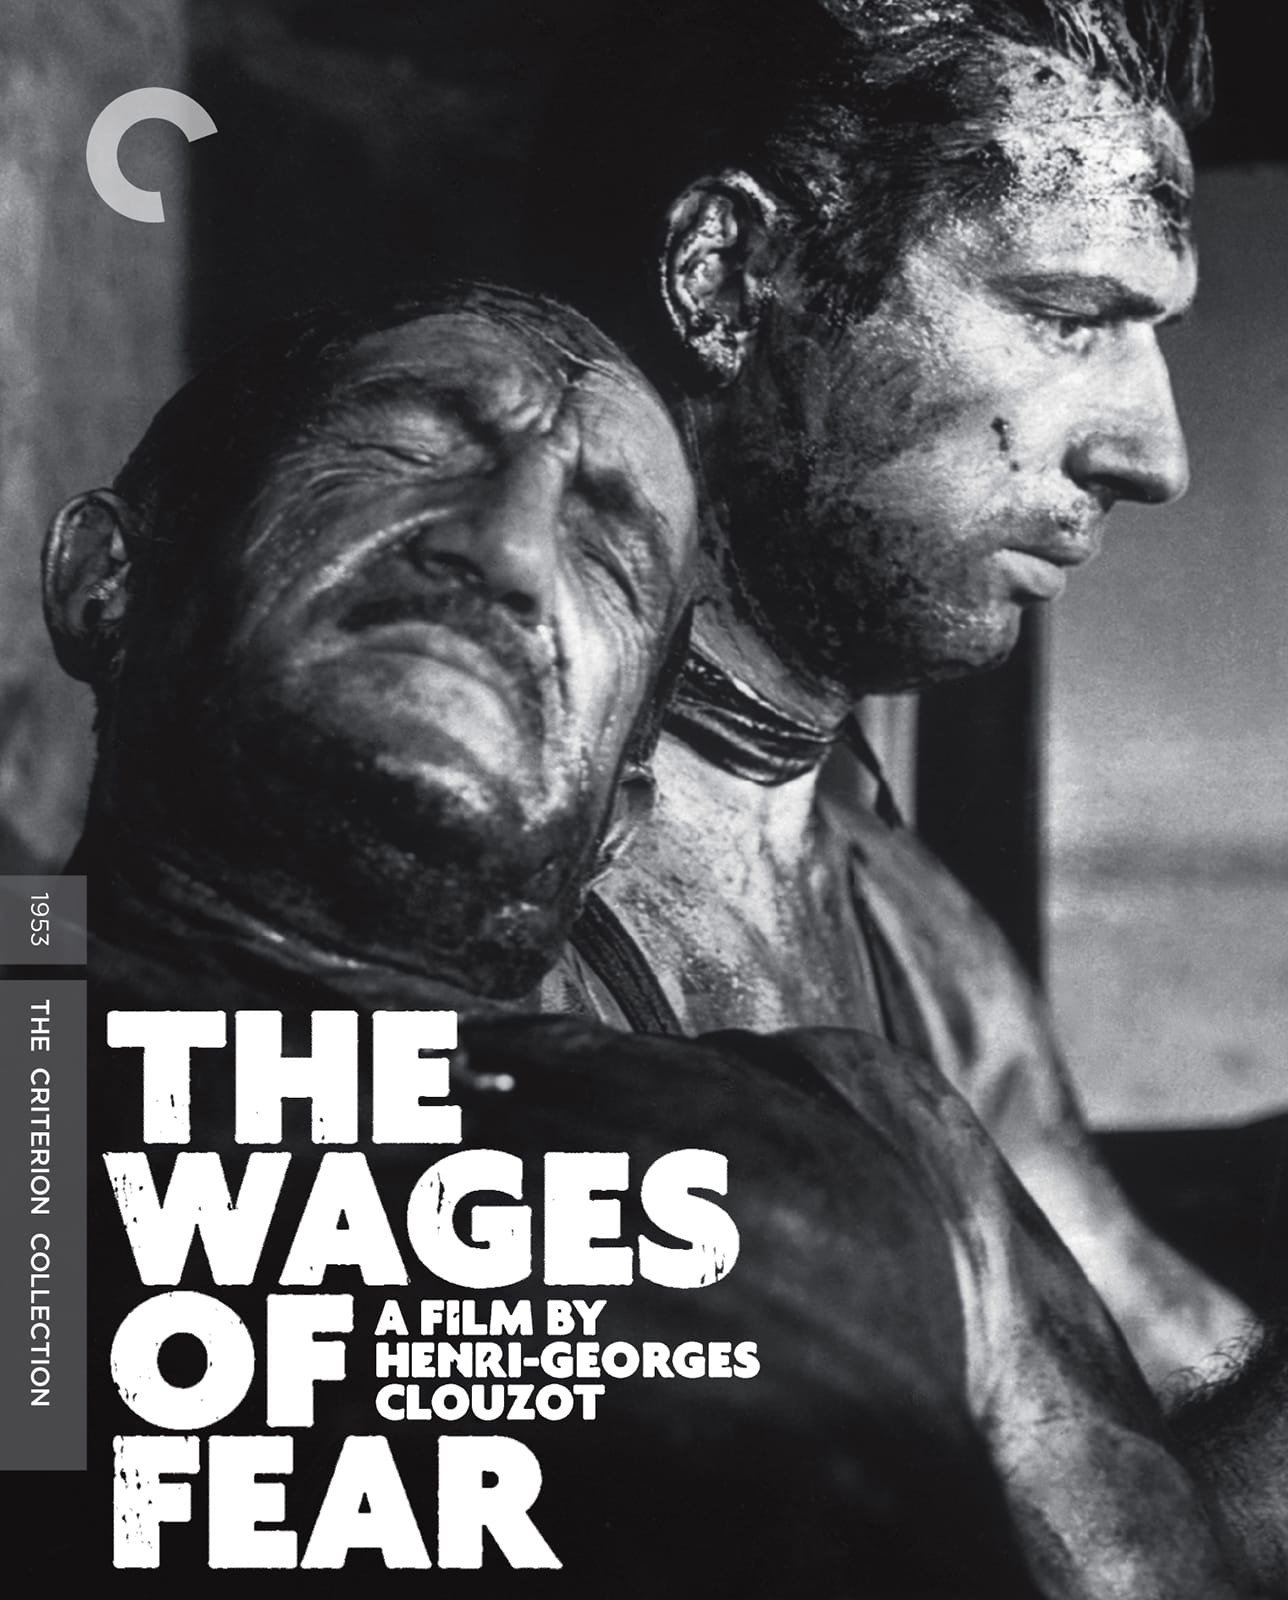 Blu-ray Review: The Wages of Fear - Slant Magazine